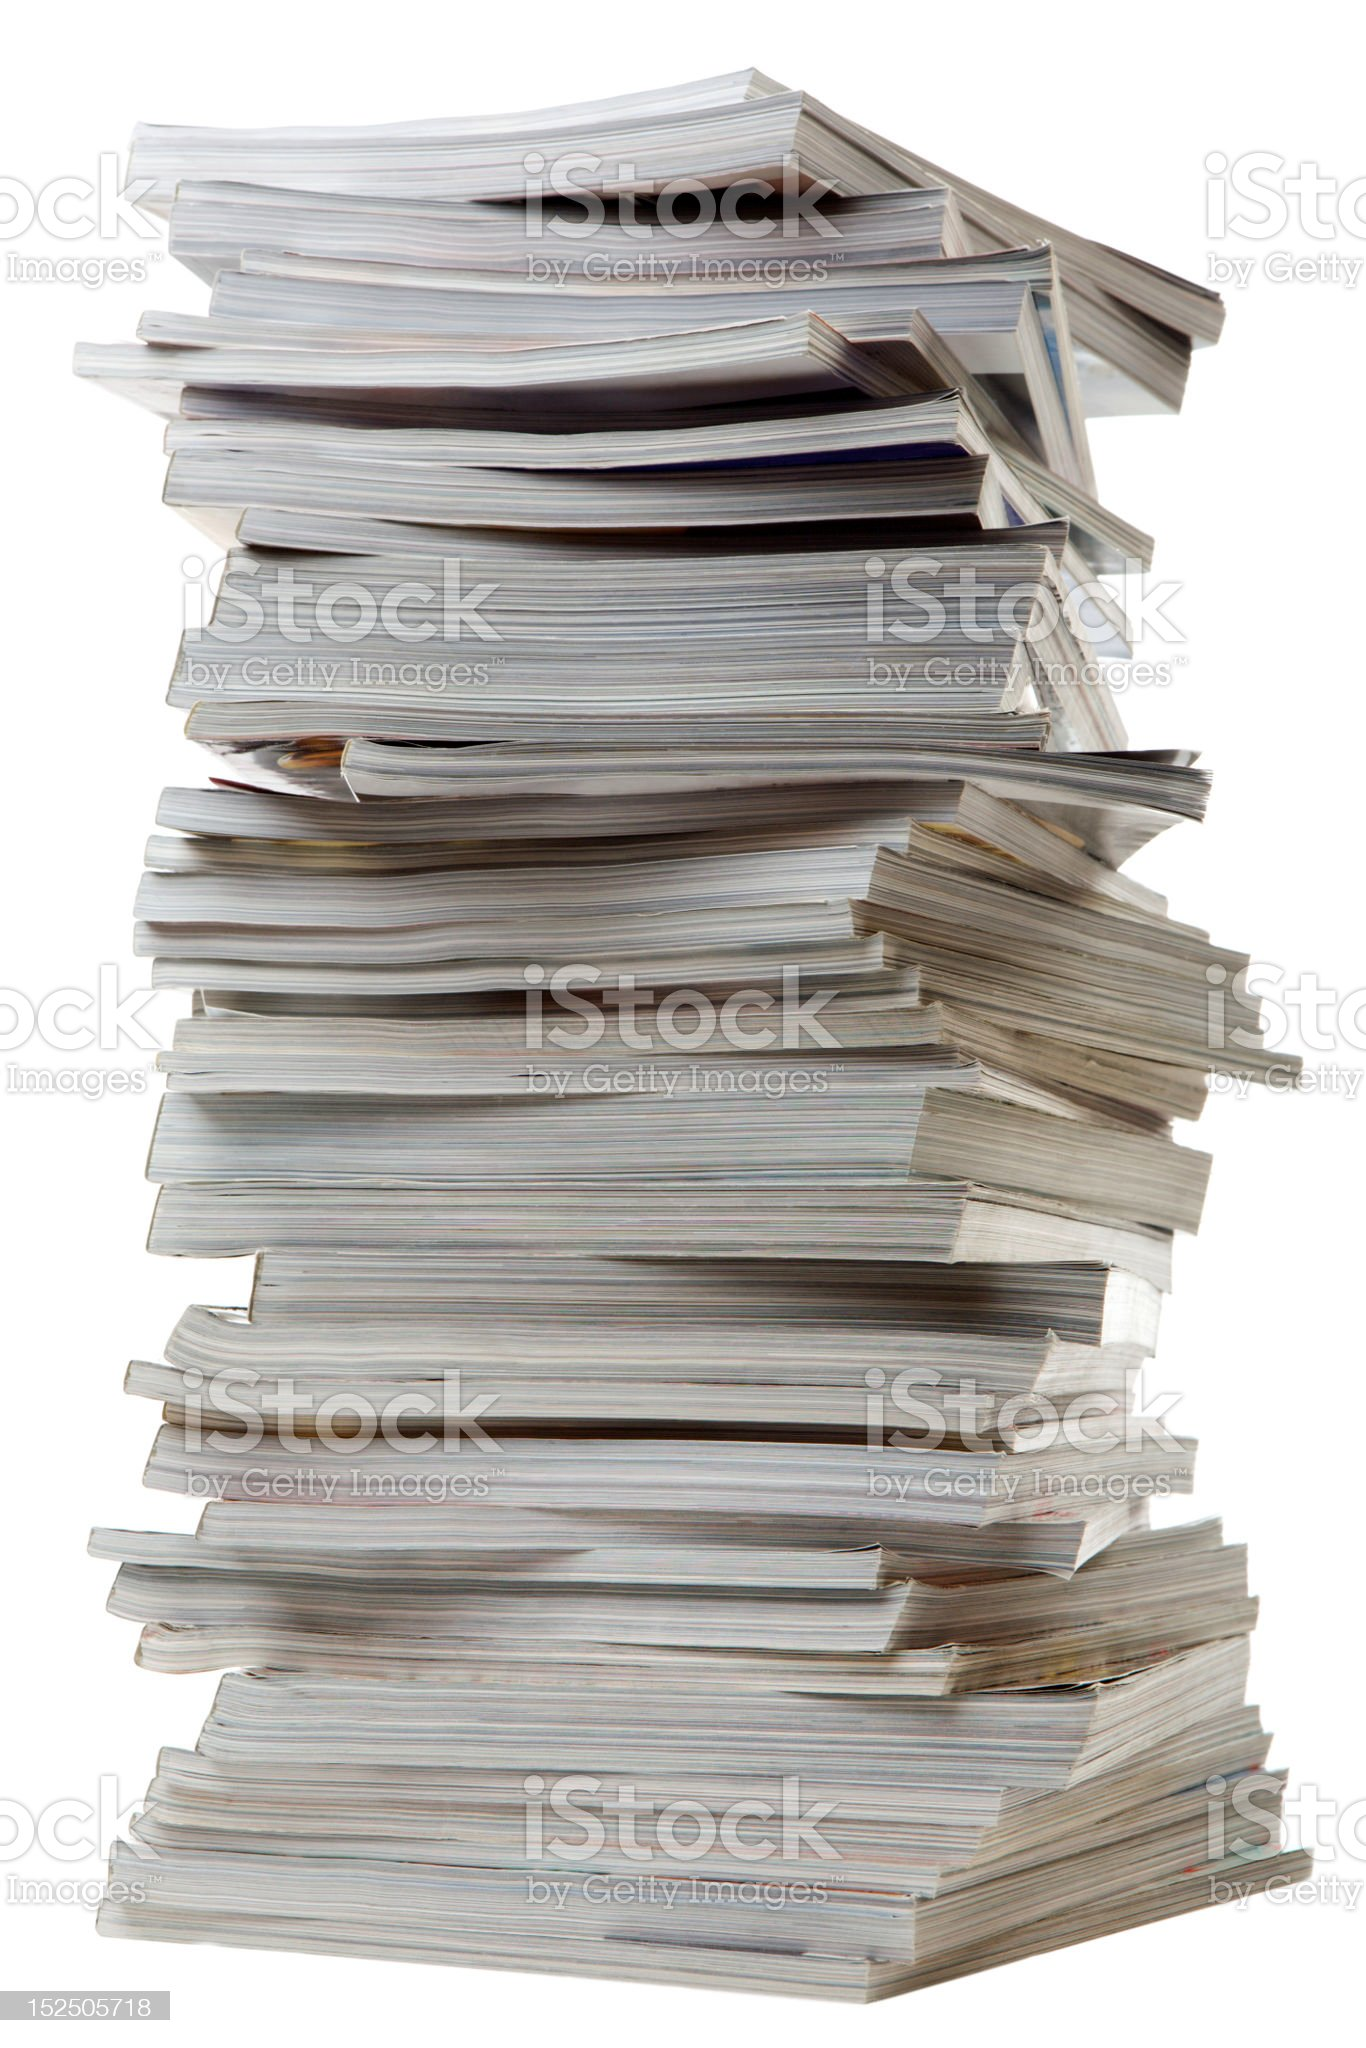 Pile of old thick magazines. royalty-free stock photo